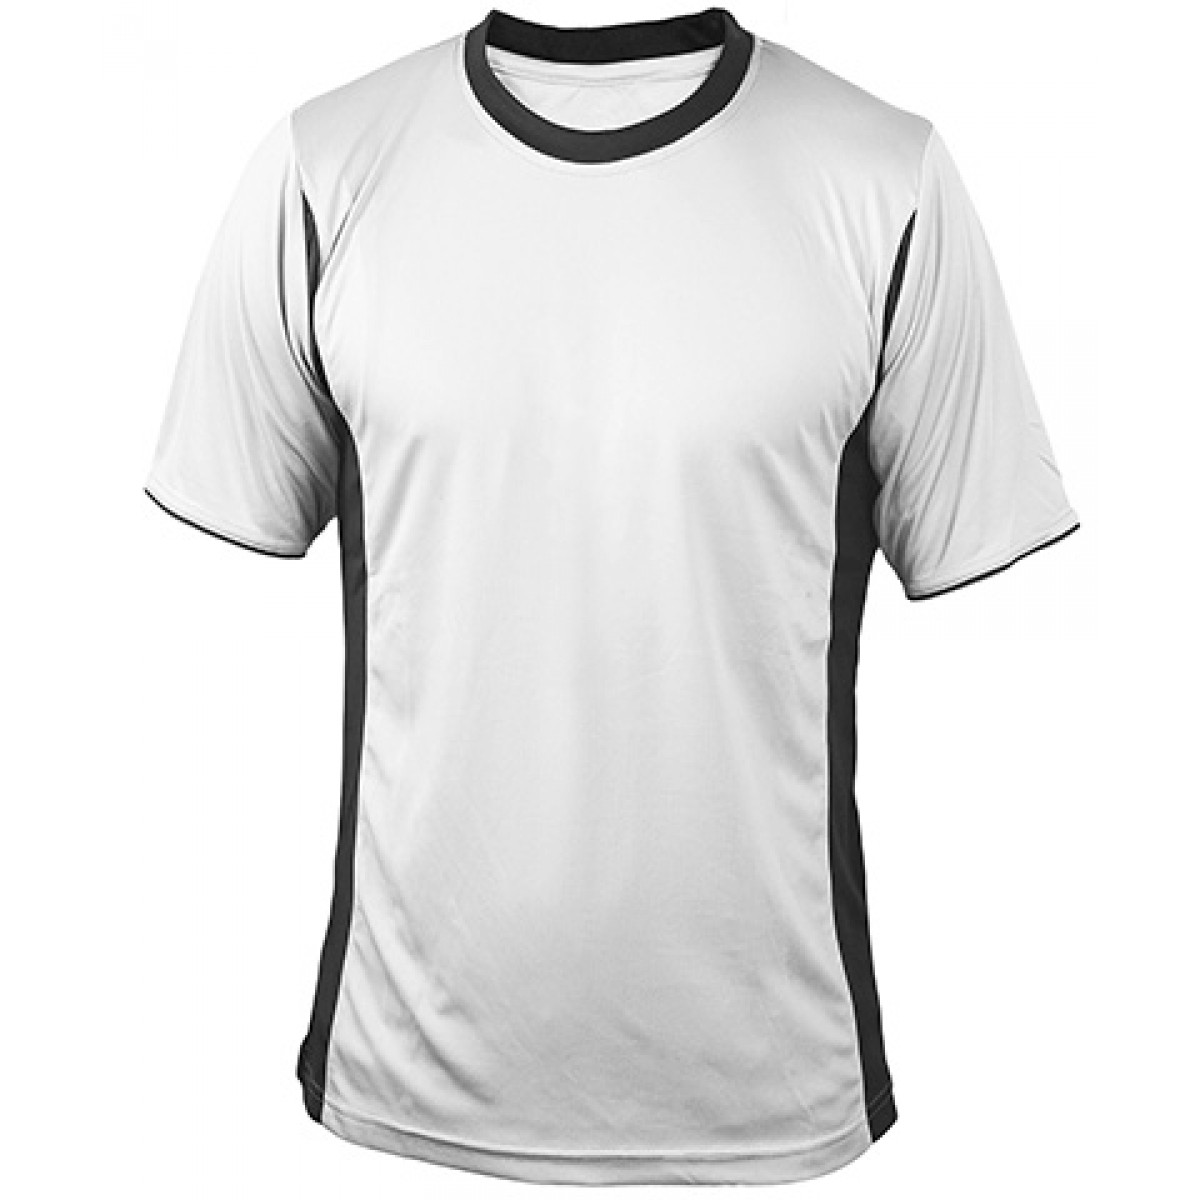 White Short Sleeves Performance With Black Side Insert